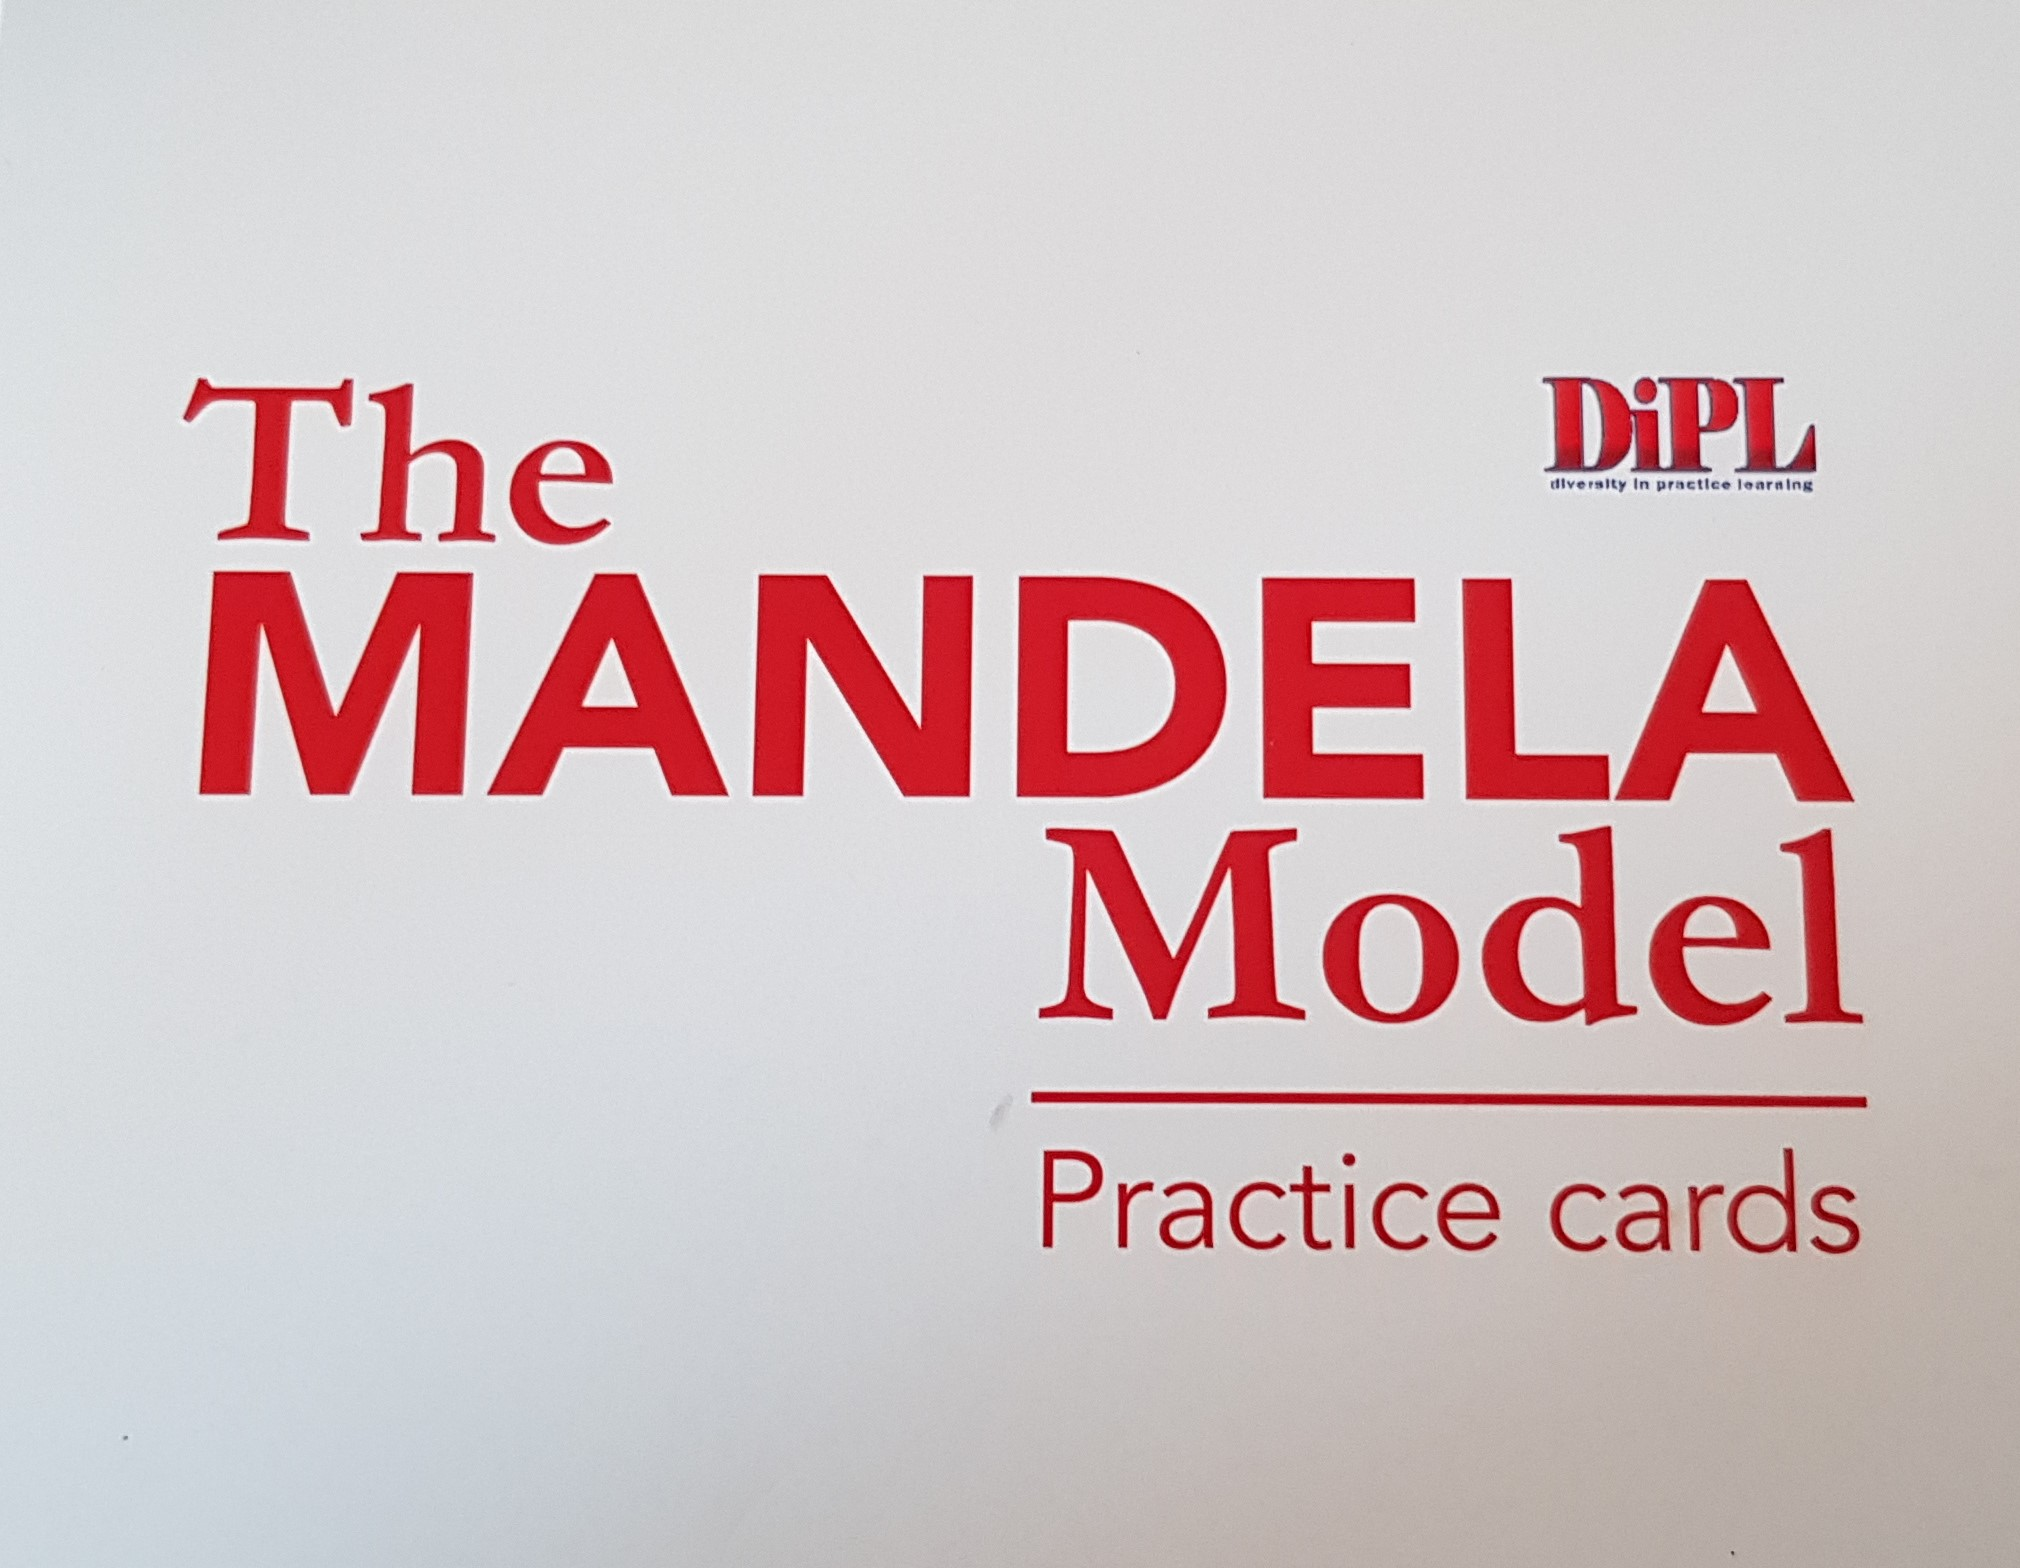 The Mandela Model Practice Cards